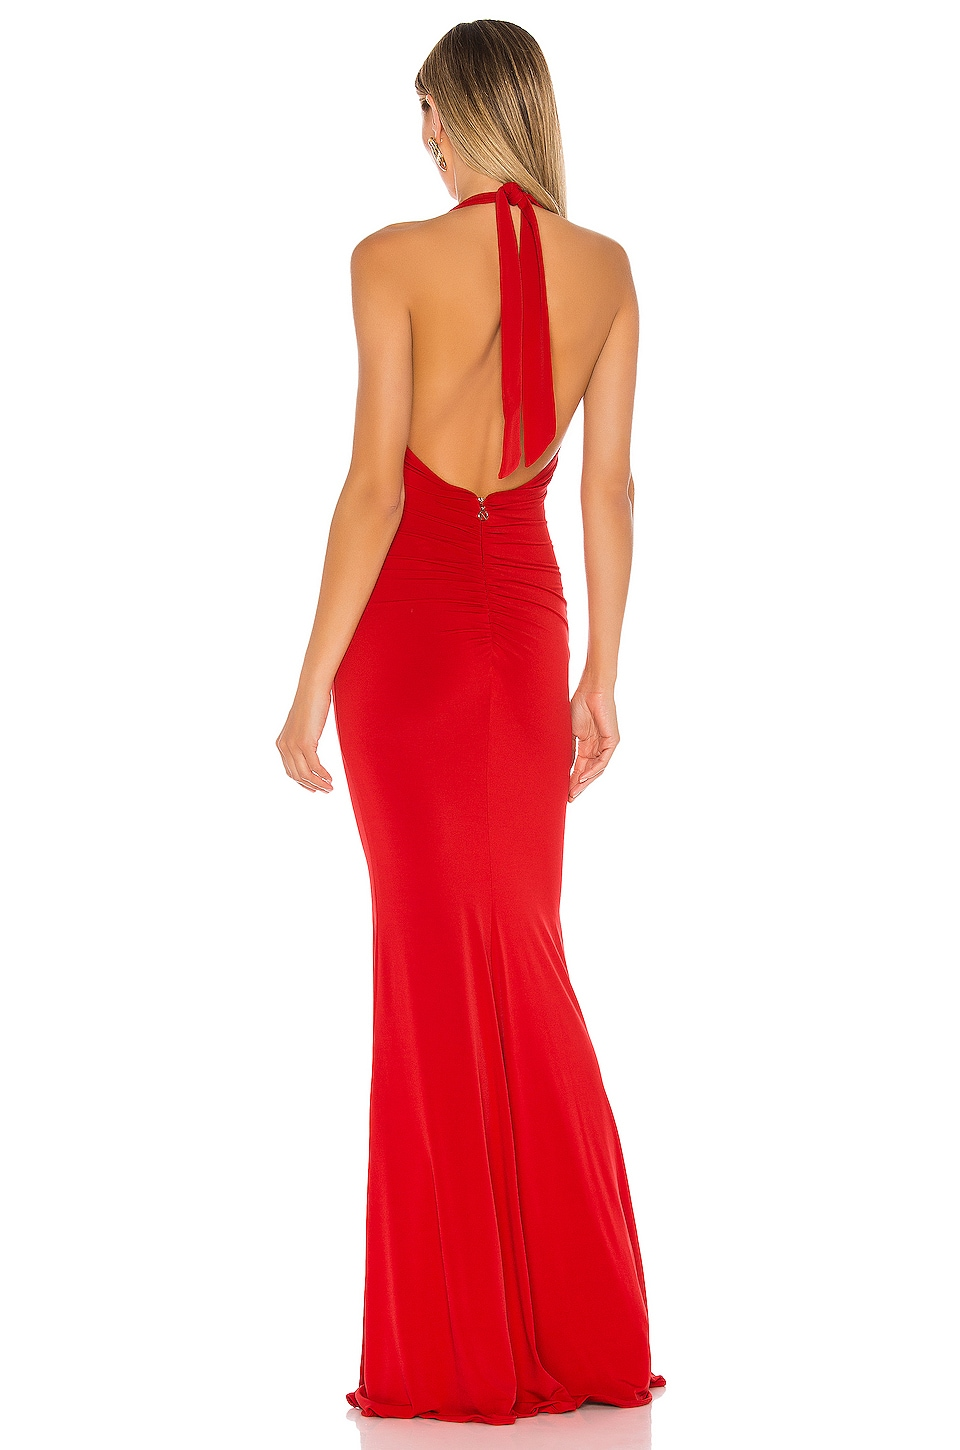 Illegal Halter Gown, view 3, click to view large image.